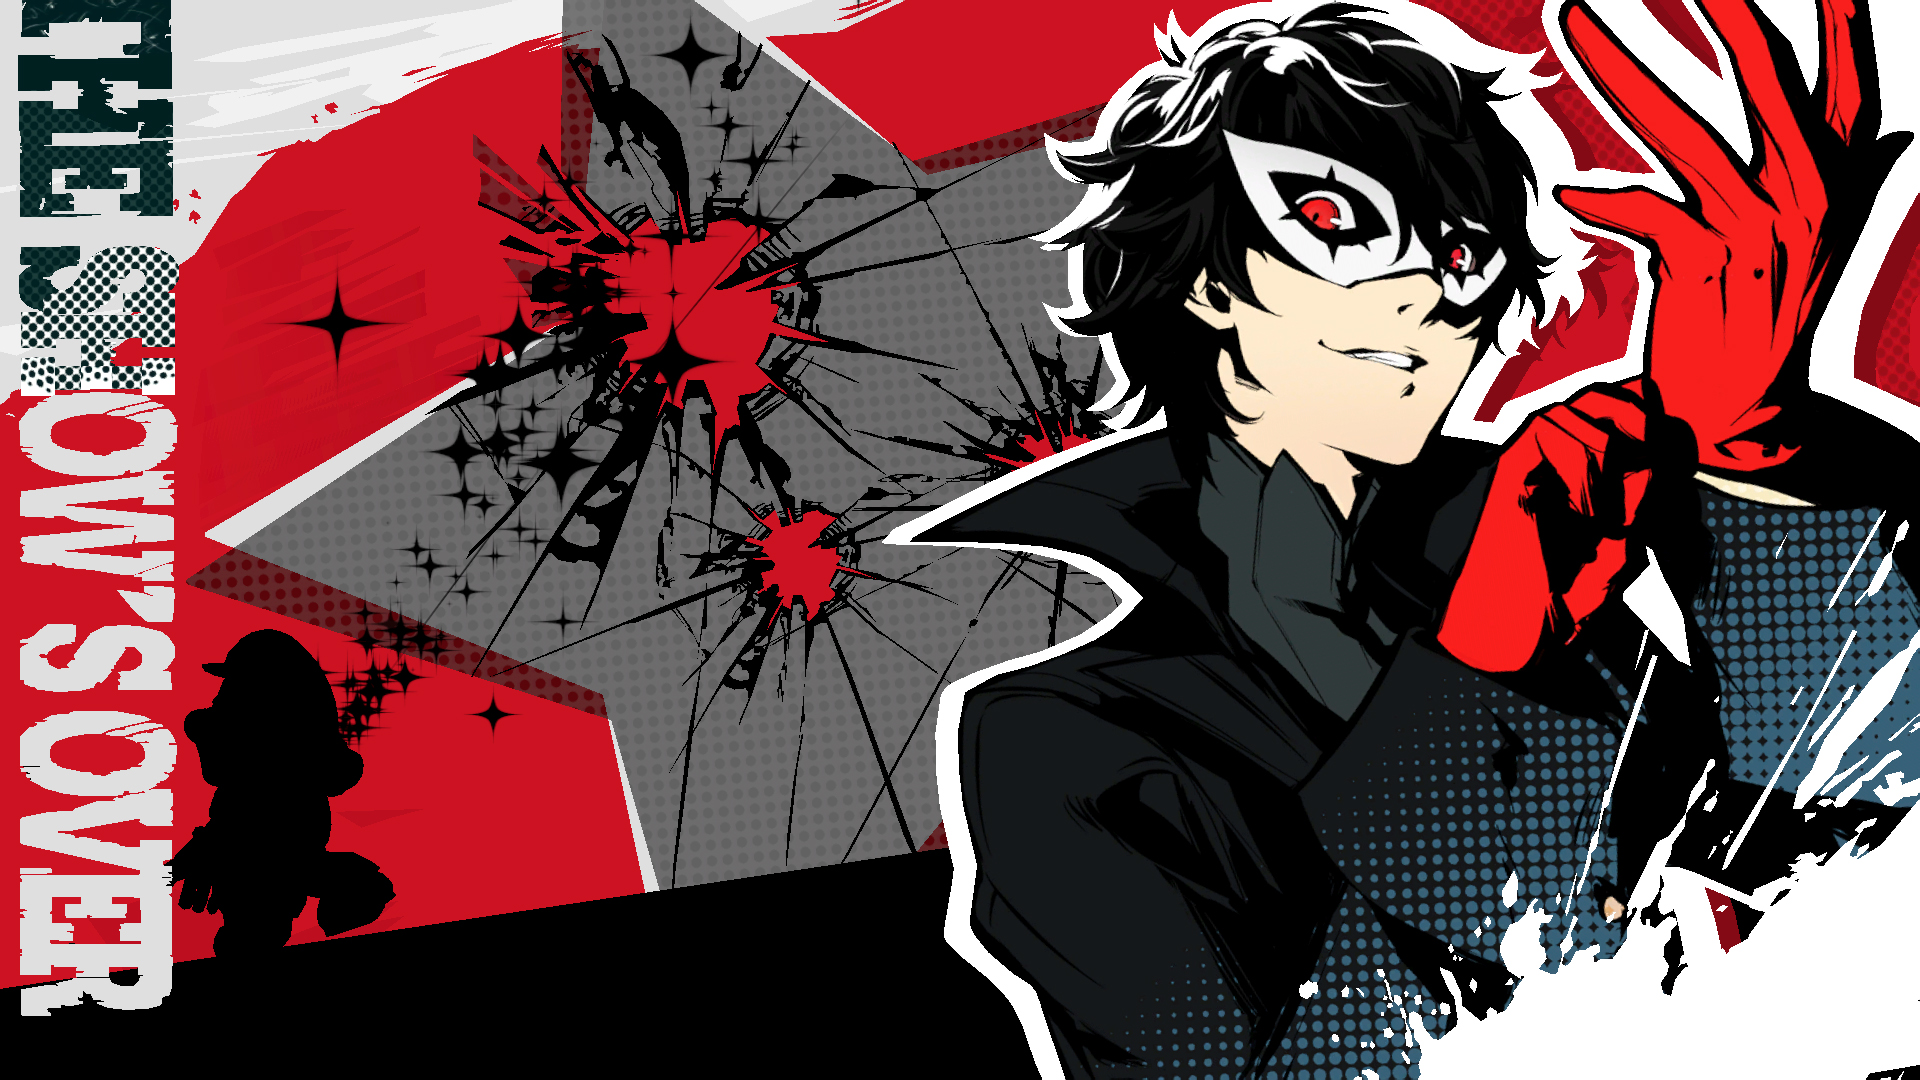 Joker from Persona 5 and Version 3.0 Comes To Super Smash Bros Ultimate 18th April